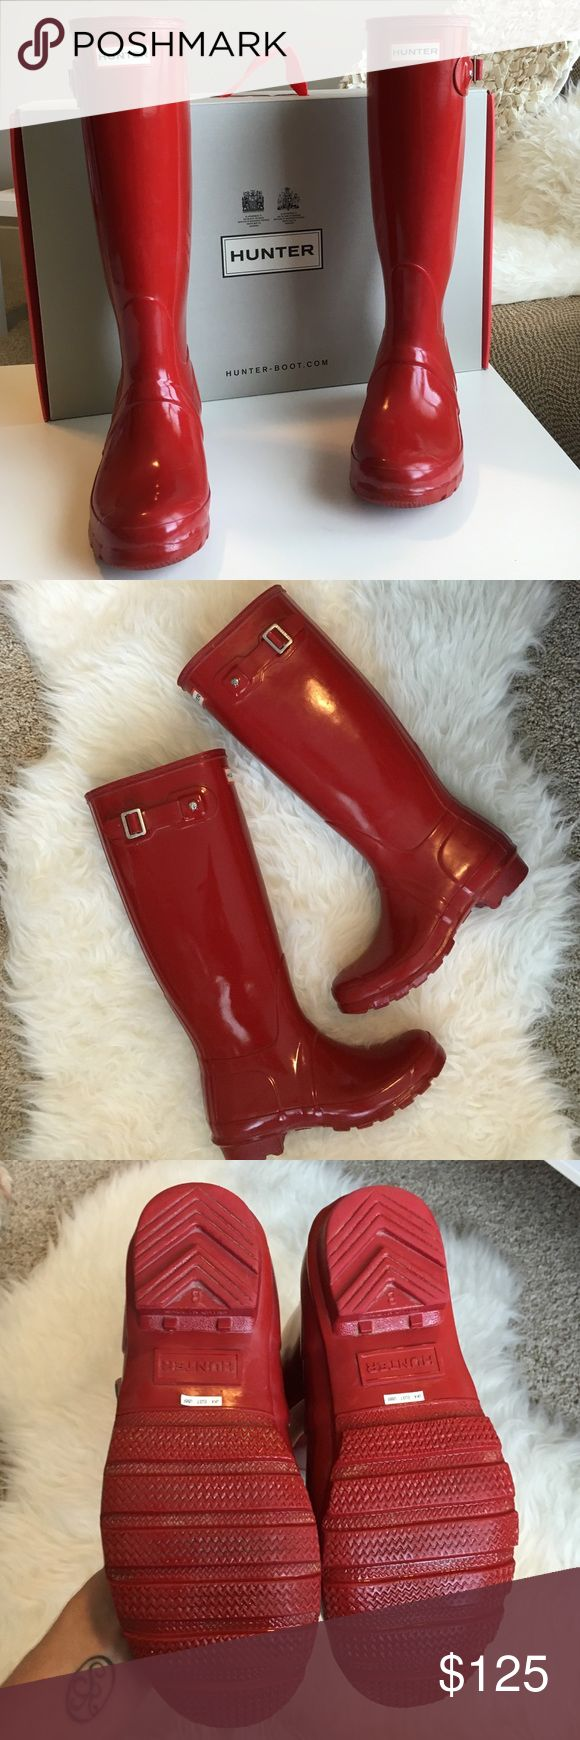 Hunter Boot - Red Welly Up for sale are the sassy Hunter Boot Welly - Military Red in Gloss finish! Women's size 6. Boots are in great condition! One scuff on the corner of the boot that can easily be buffed out with Hunter Welly Oil. Adjustable side clasp. Love these boots!!! Hunter Boots Shoes Winter & Rain Boots